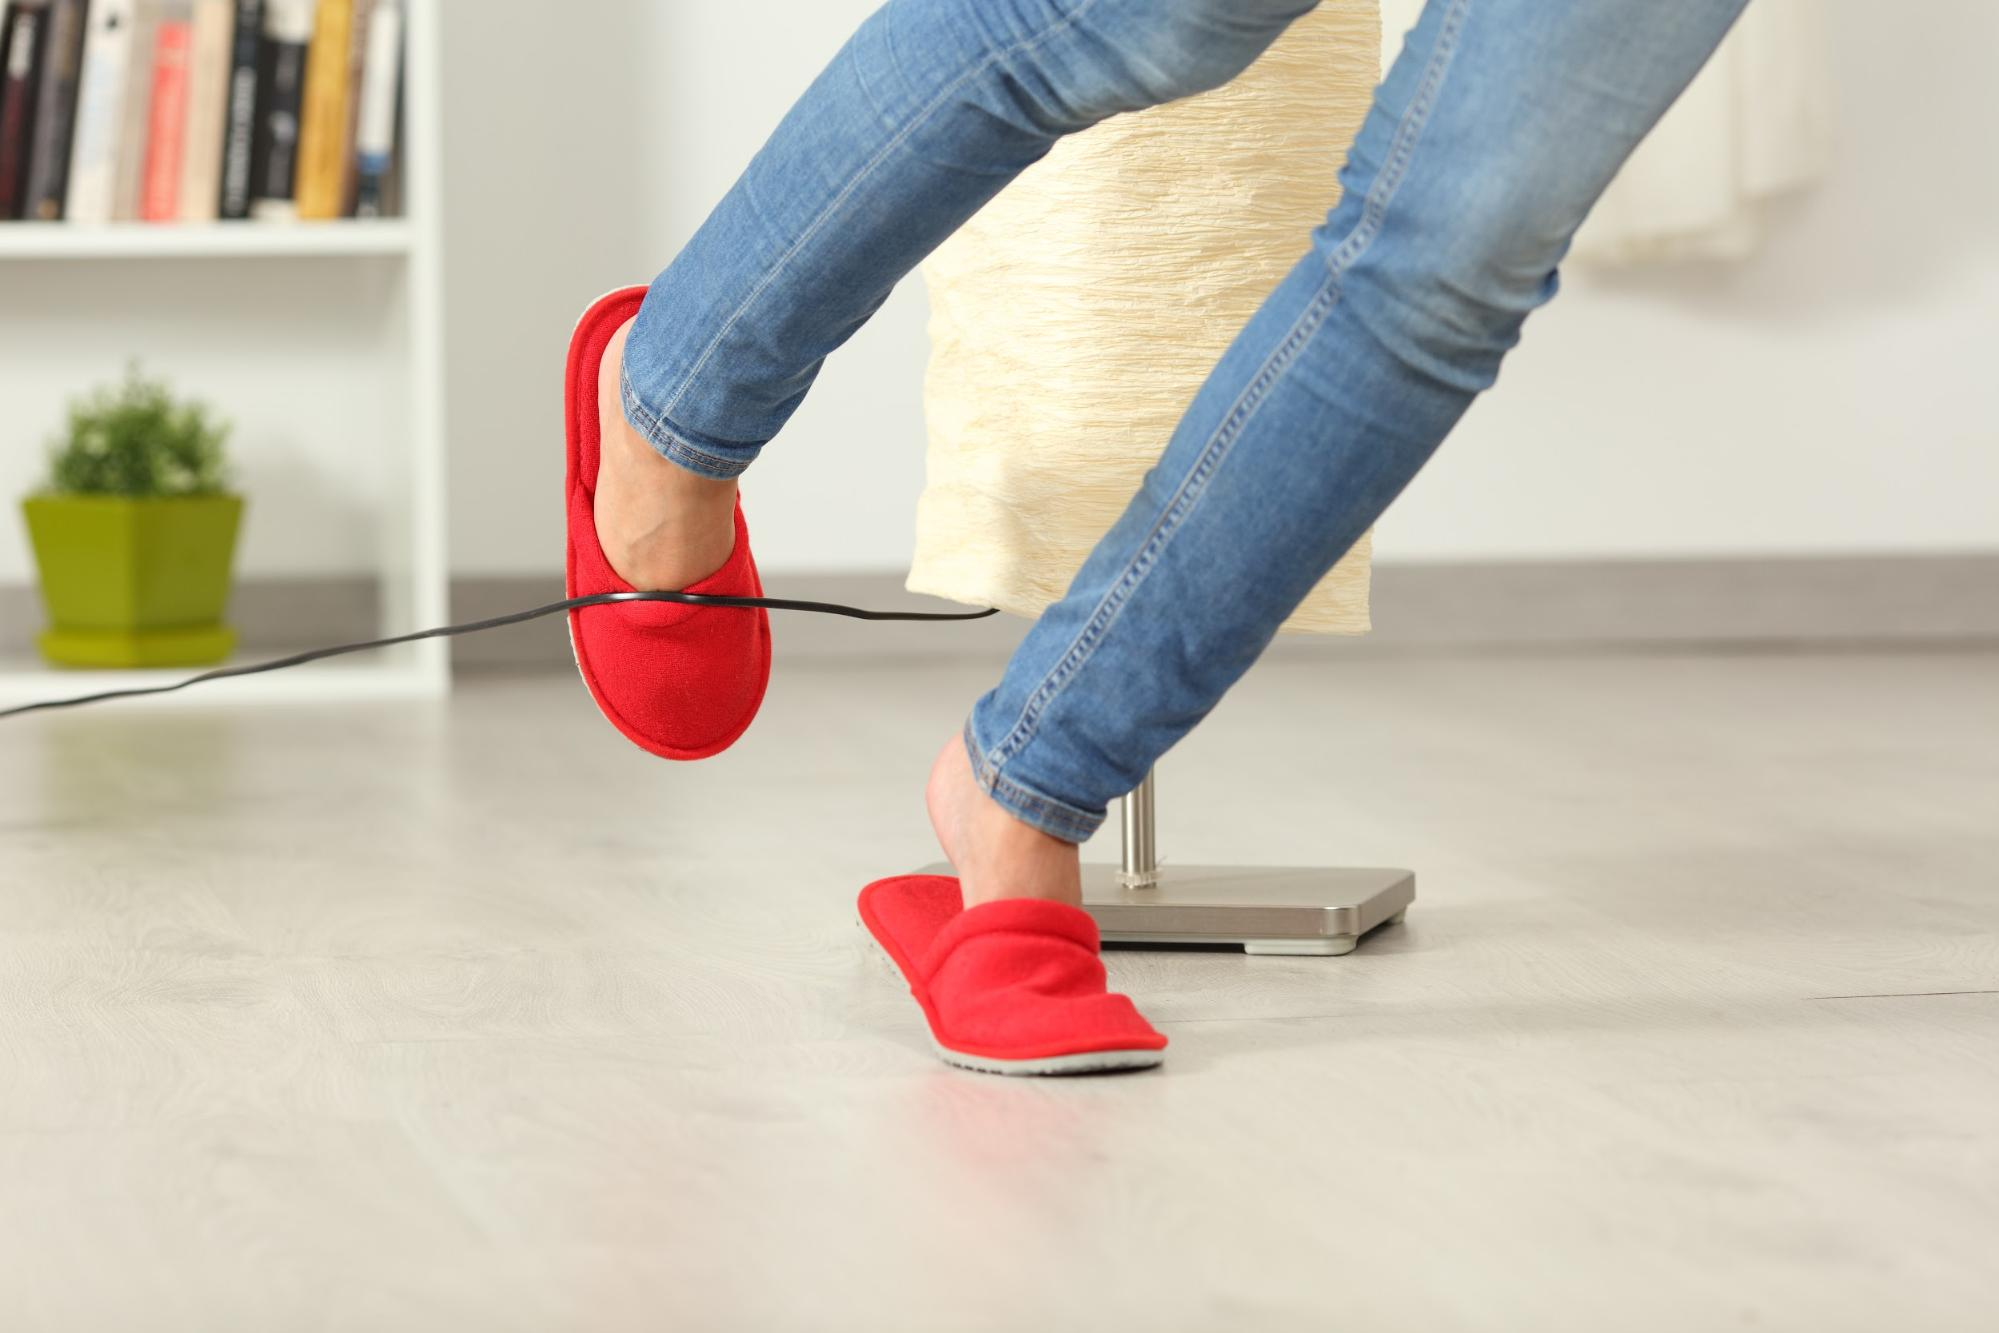 Woman tripping over a cord of a floor lamp